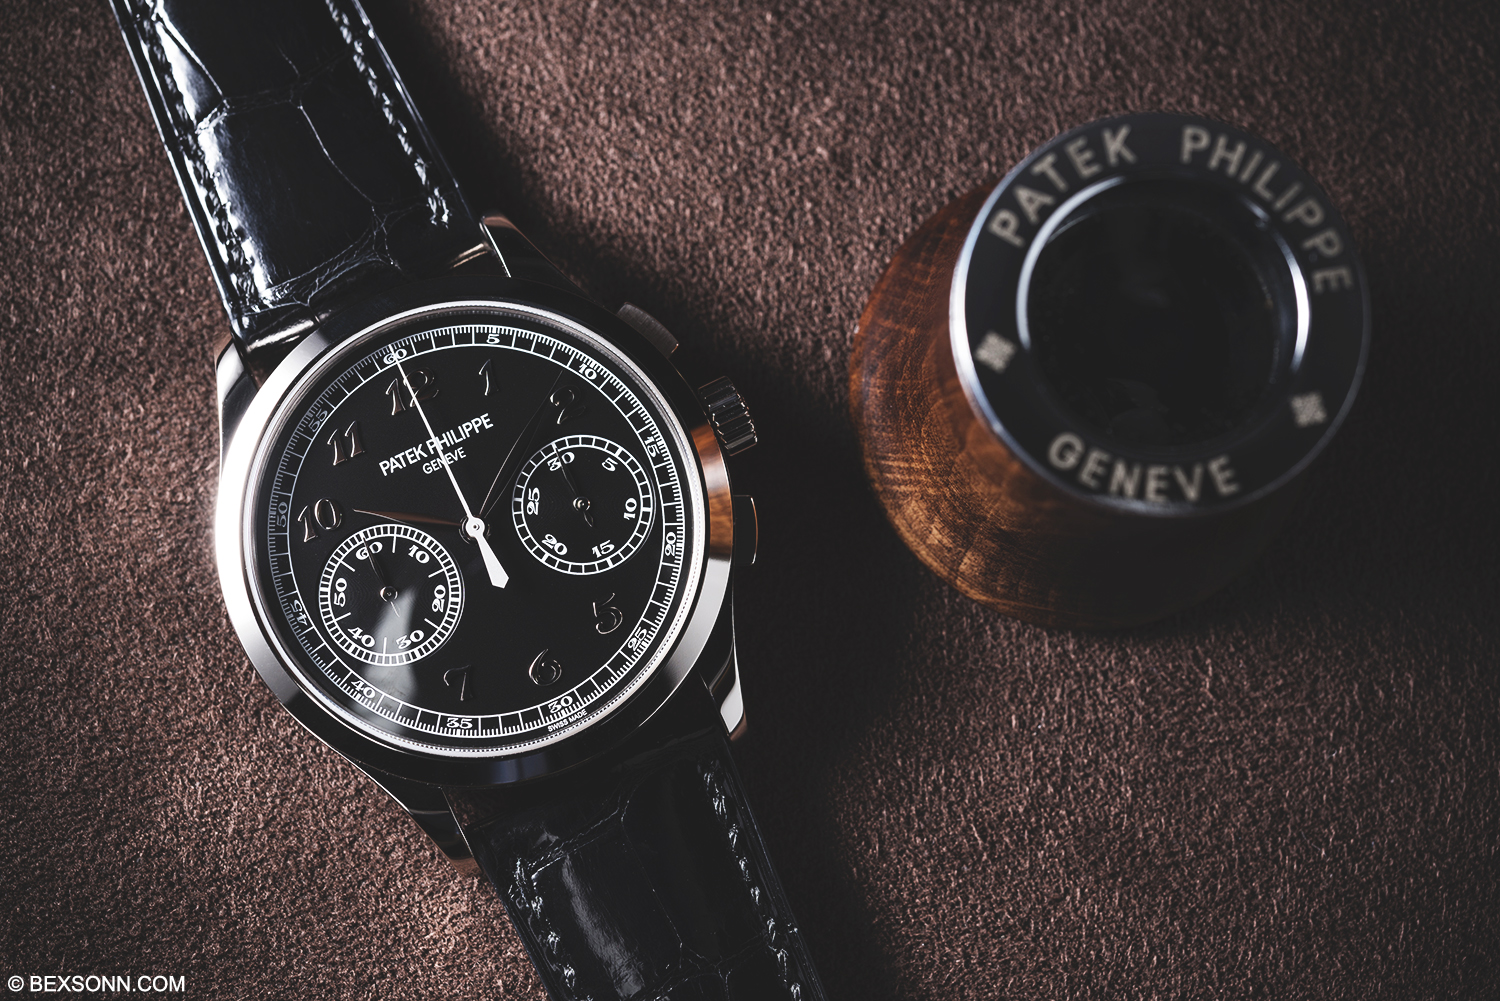 Hands On With The New Patek Philippe 5170g With Black Dial Patek S